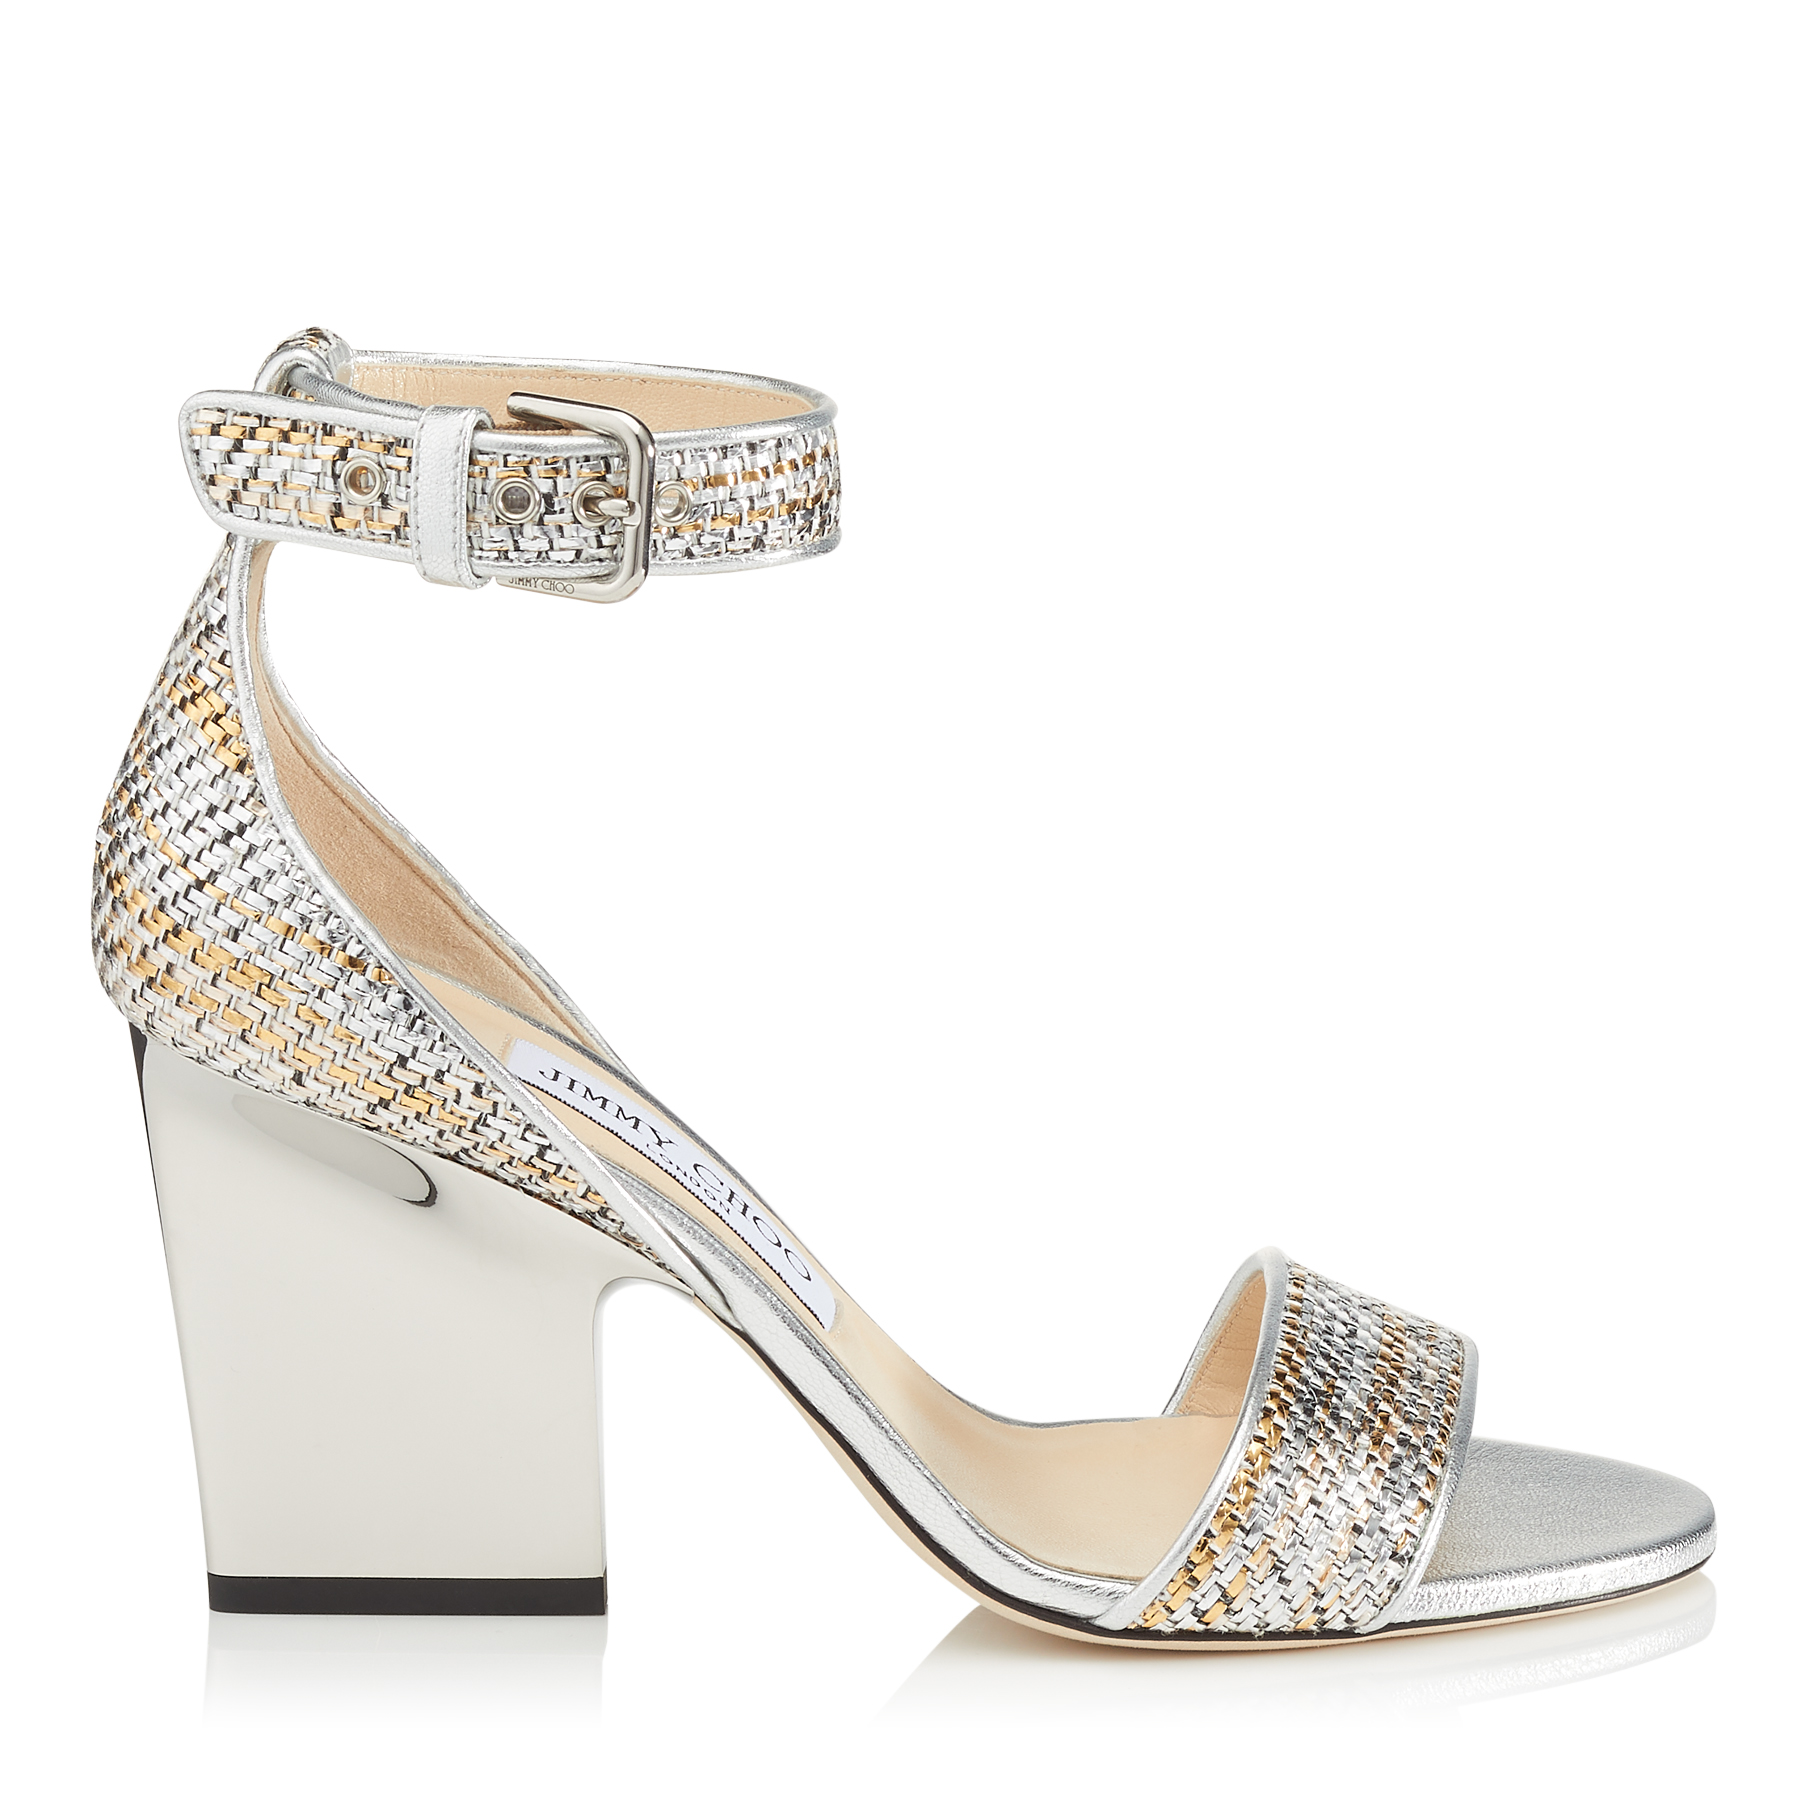 EDINA 85 Silver Mix Woven Metallic Fabric Wedges by Jimmy Choo